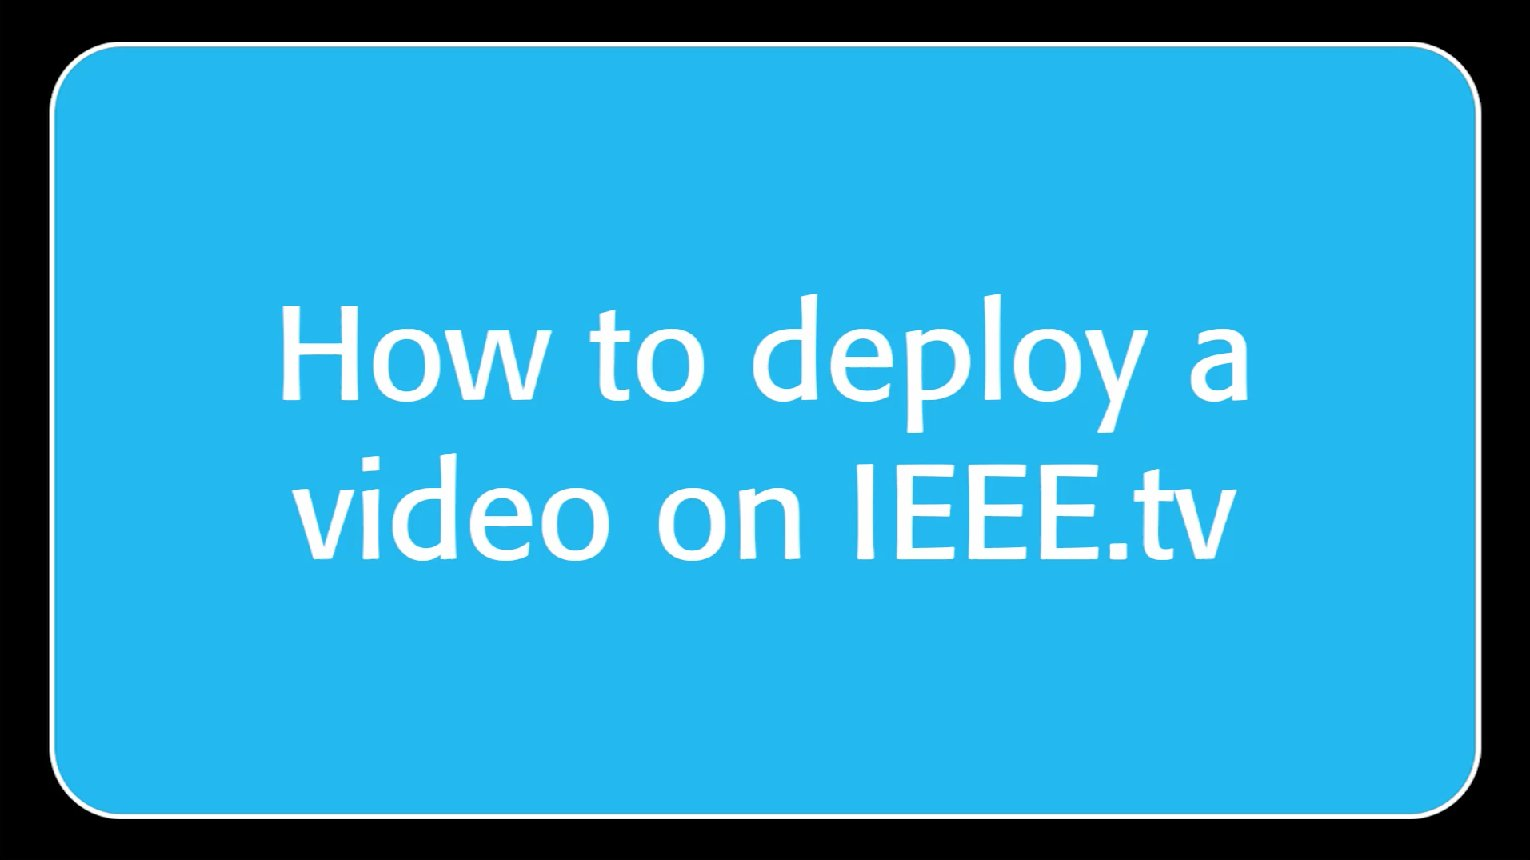 Upload Your Videos to IEEE.tv